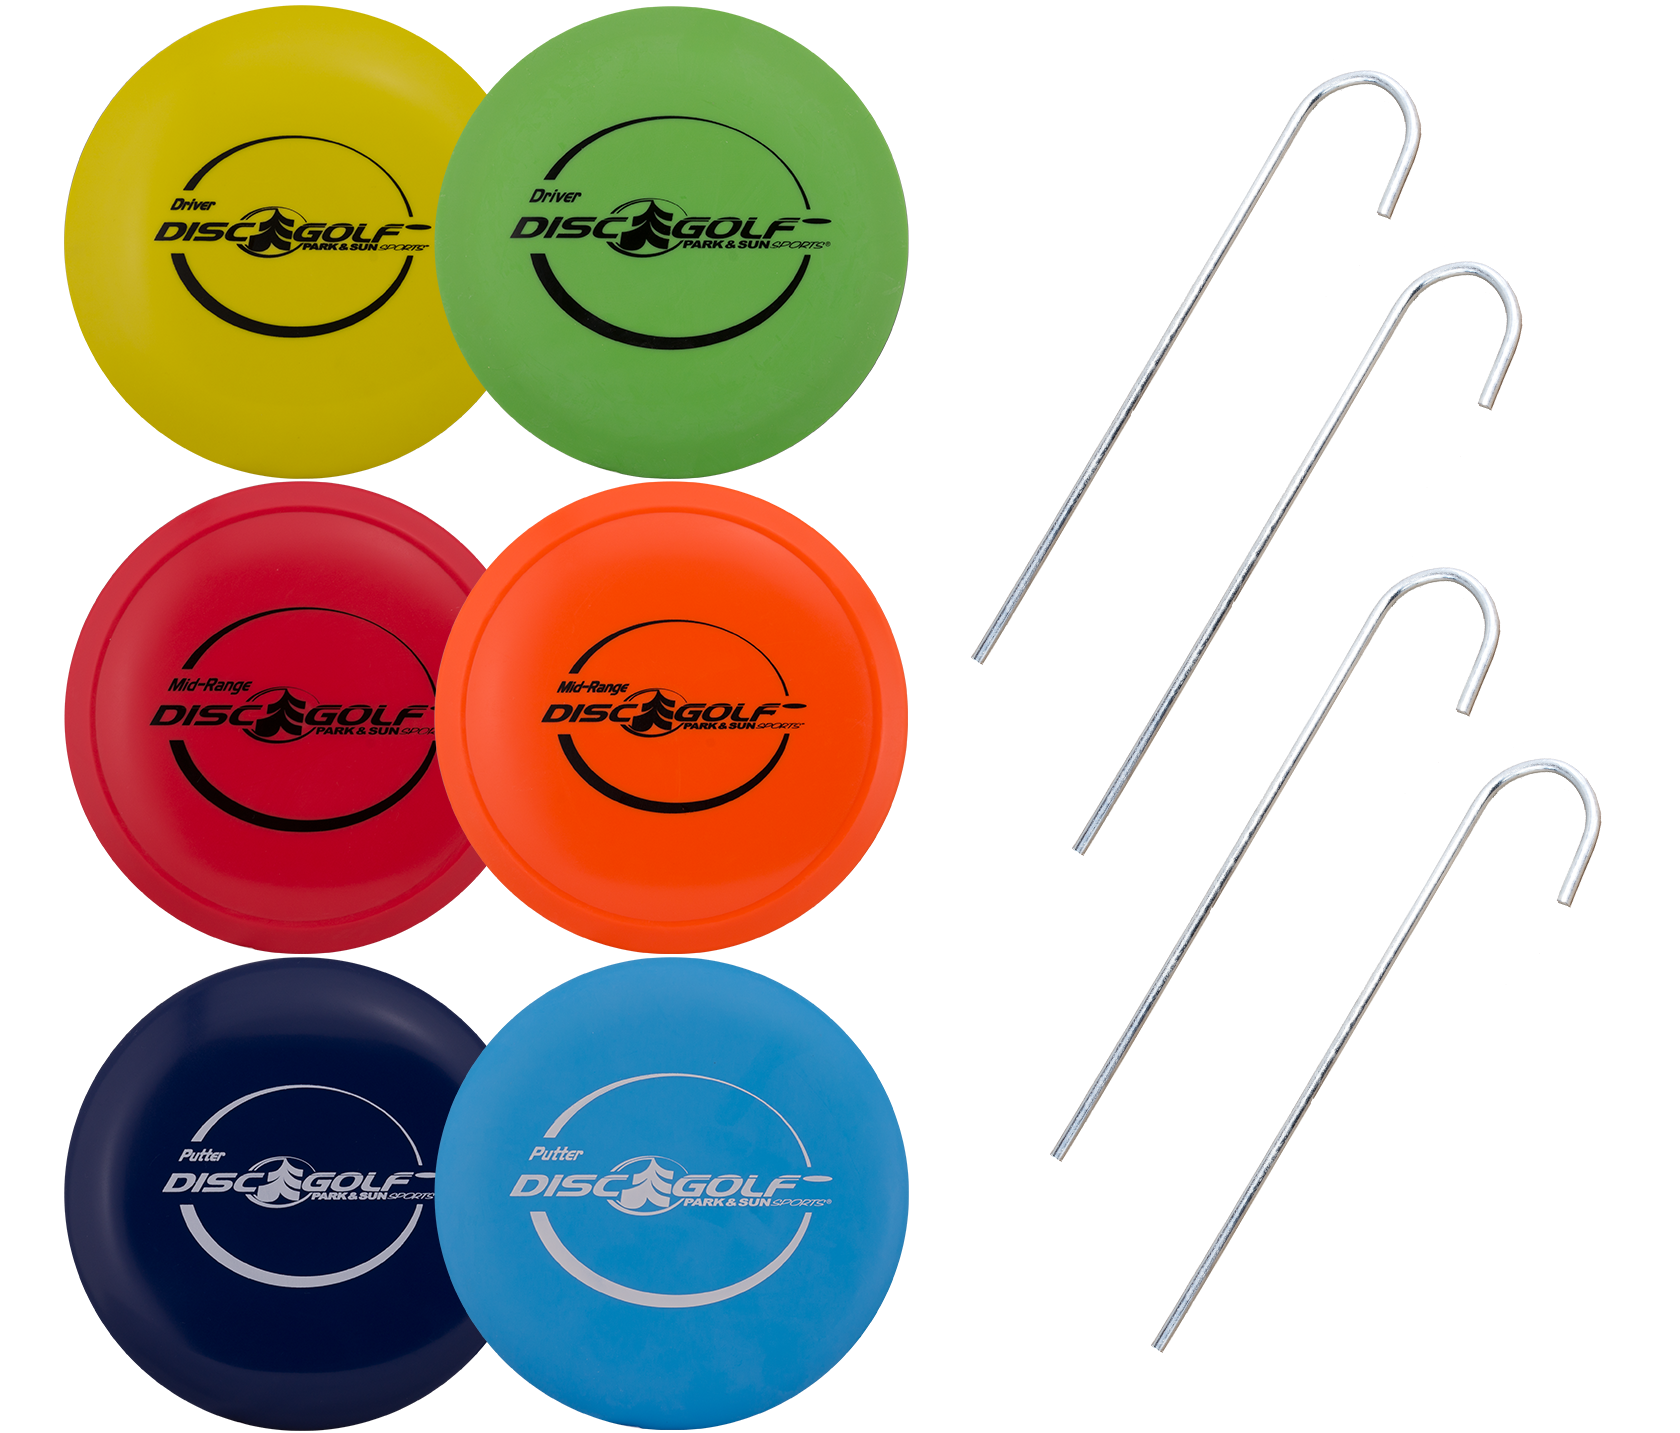 Park and Sports Disc Golf Product Layout